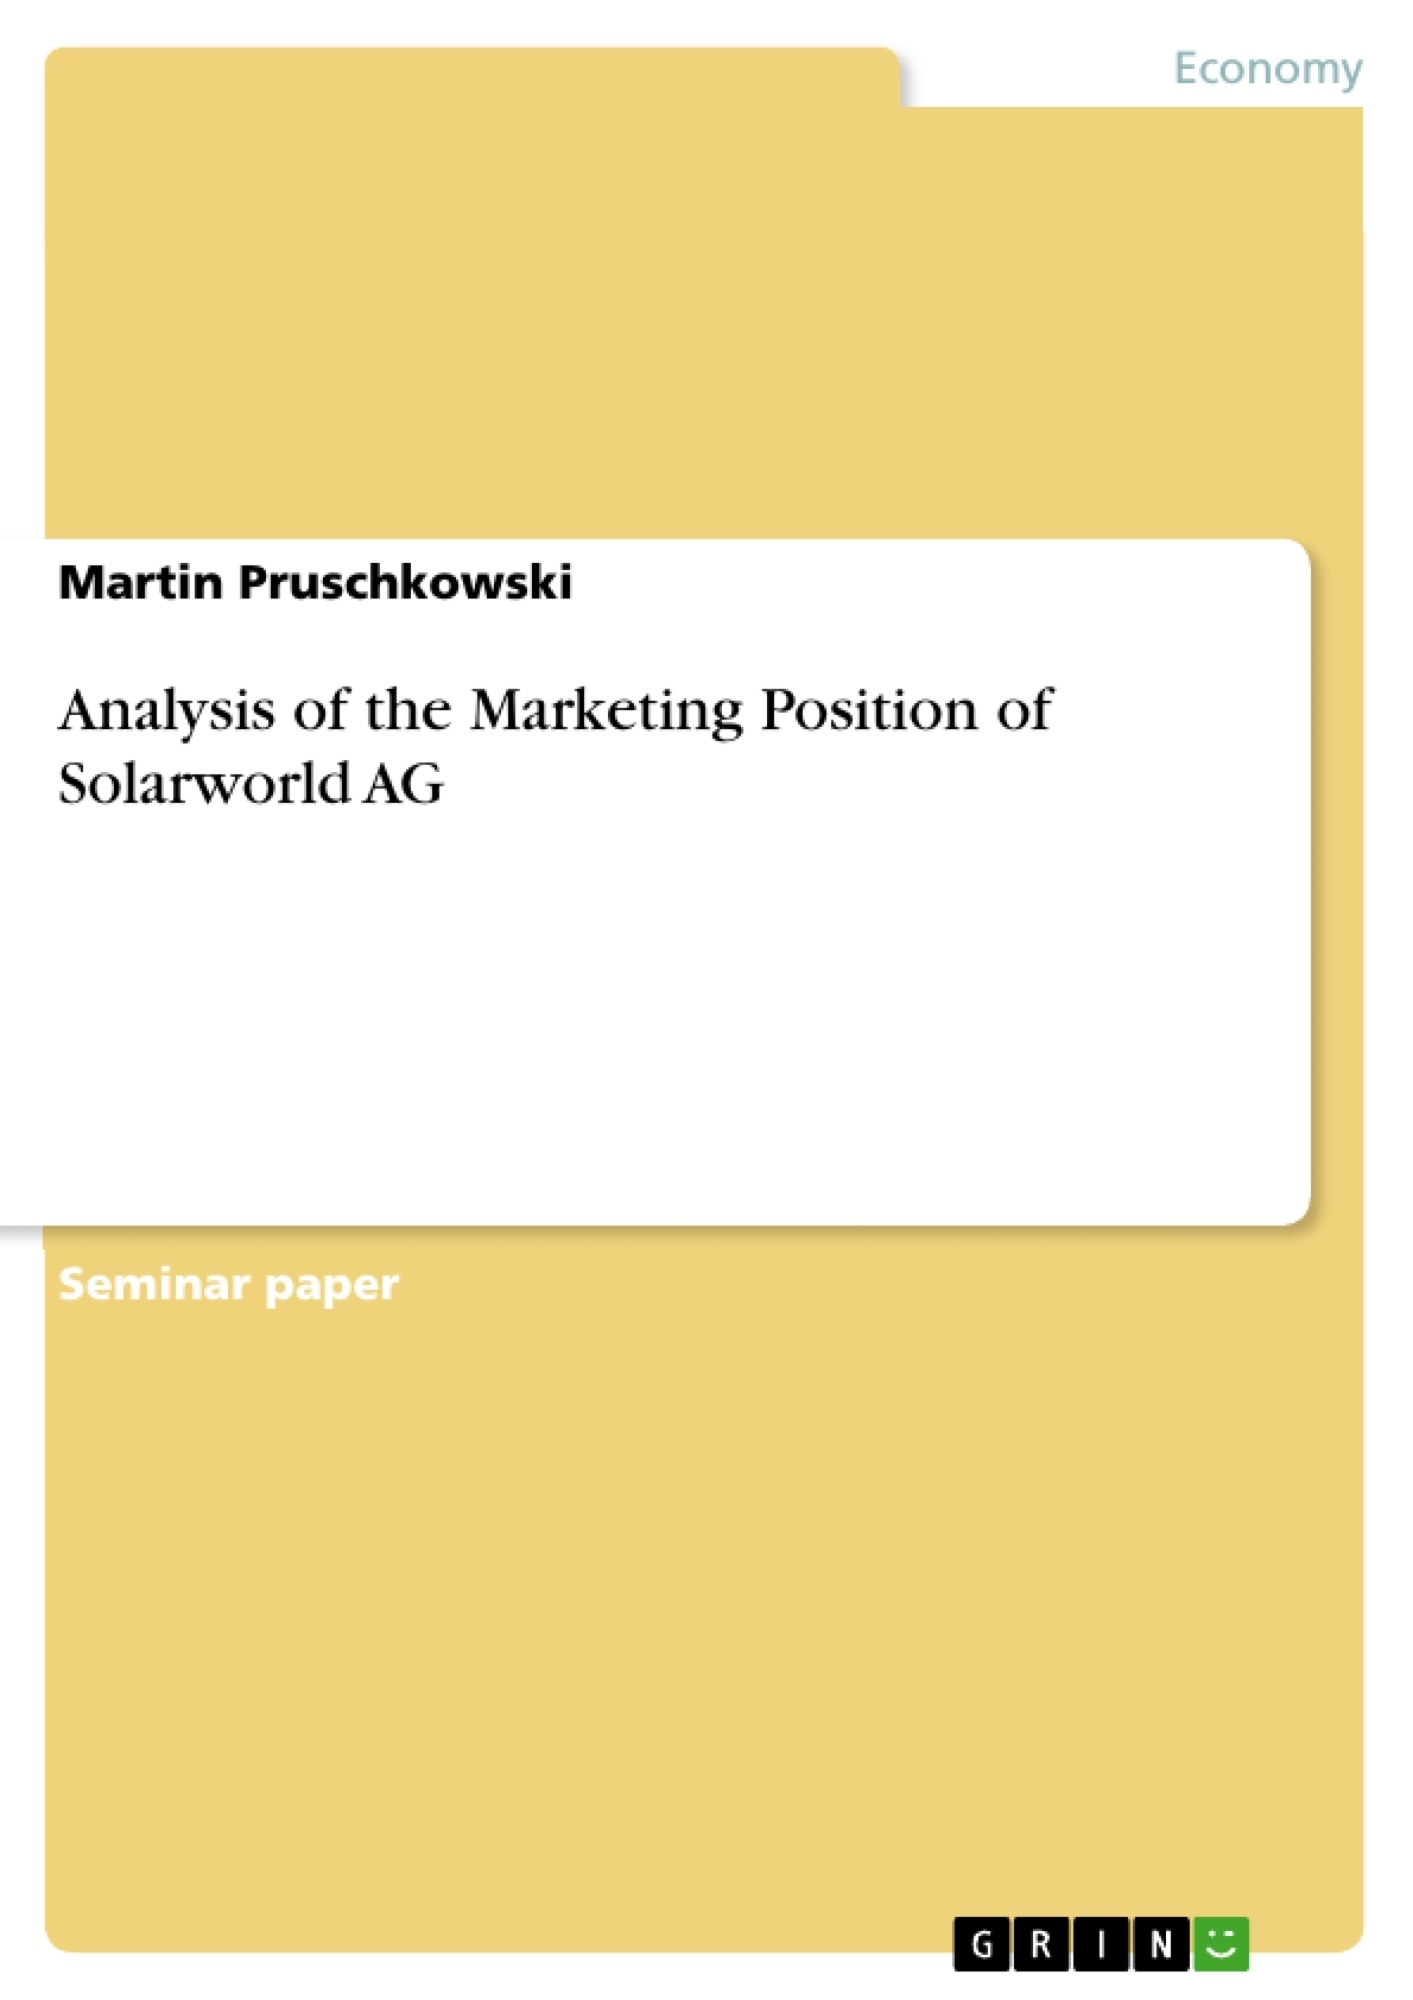 Title: Analysis of the Marketing Position of Solarworld AG